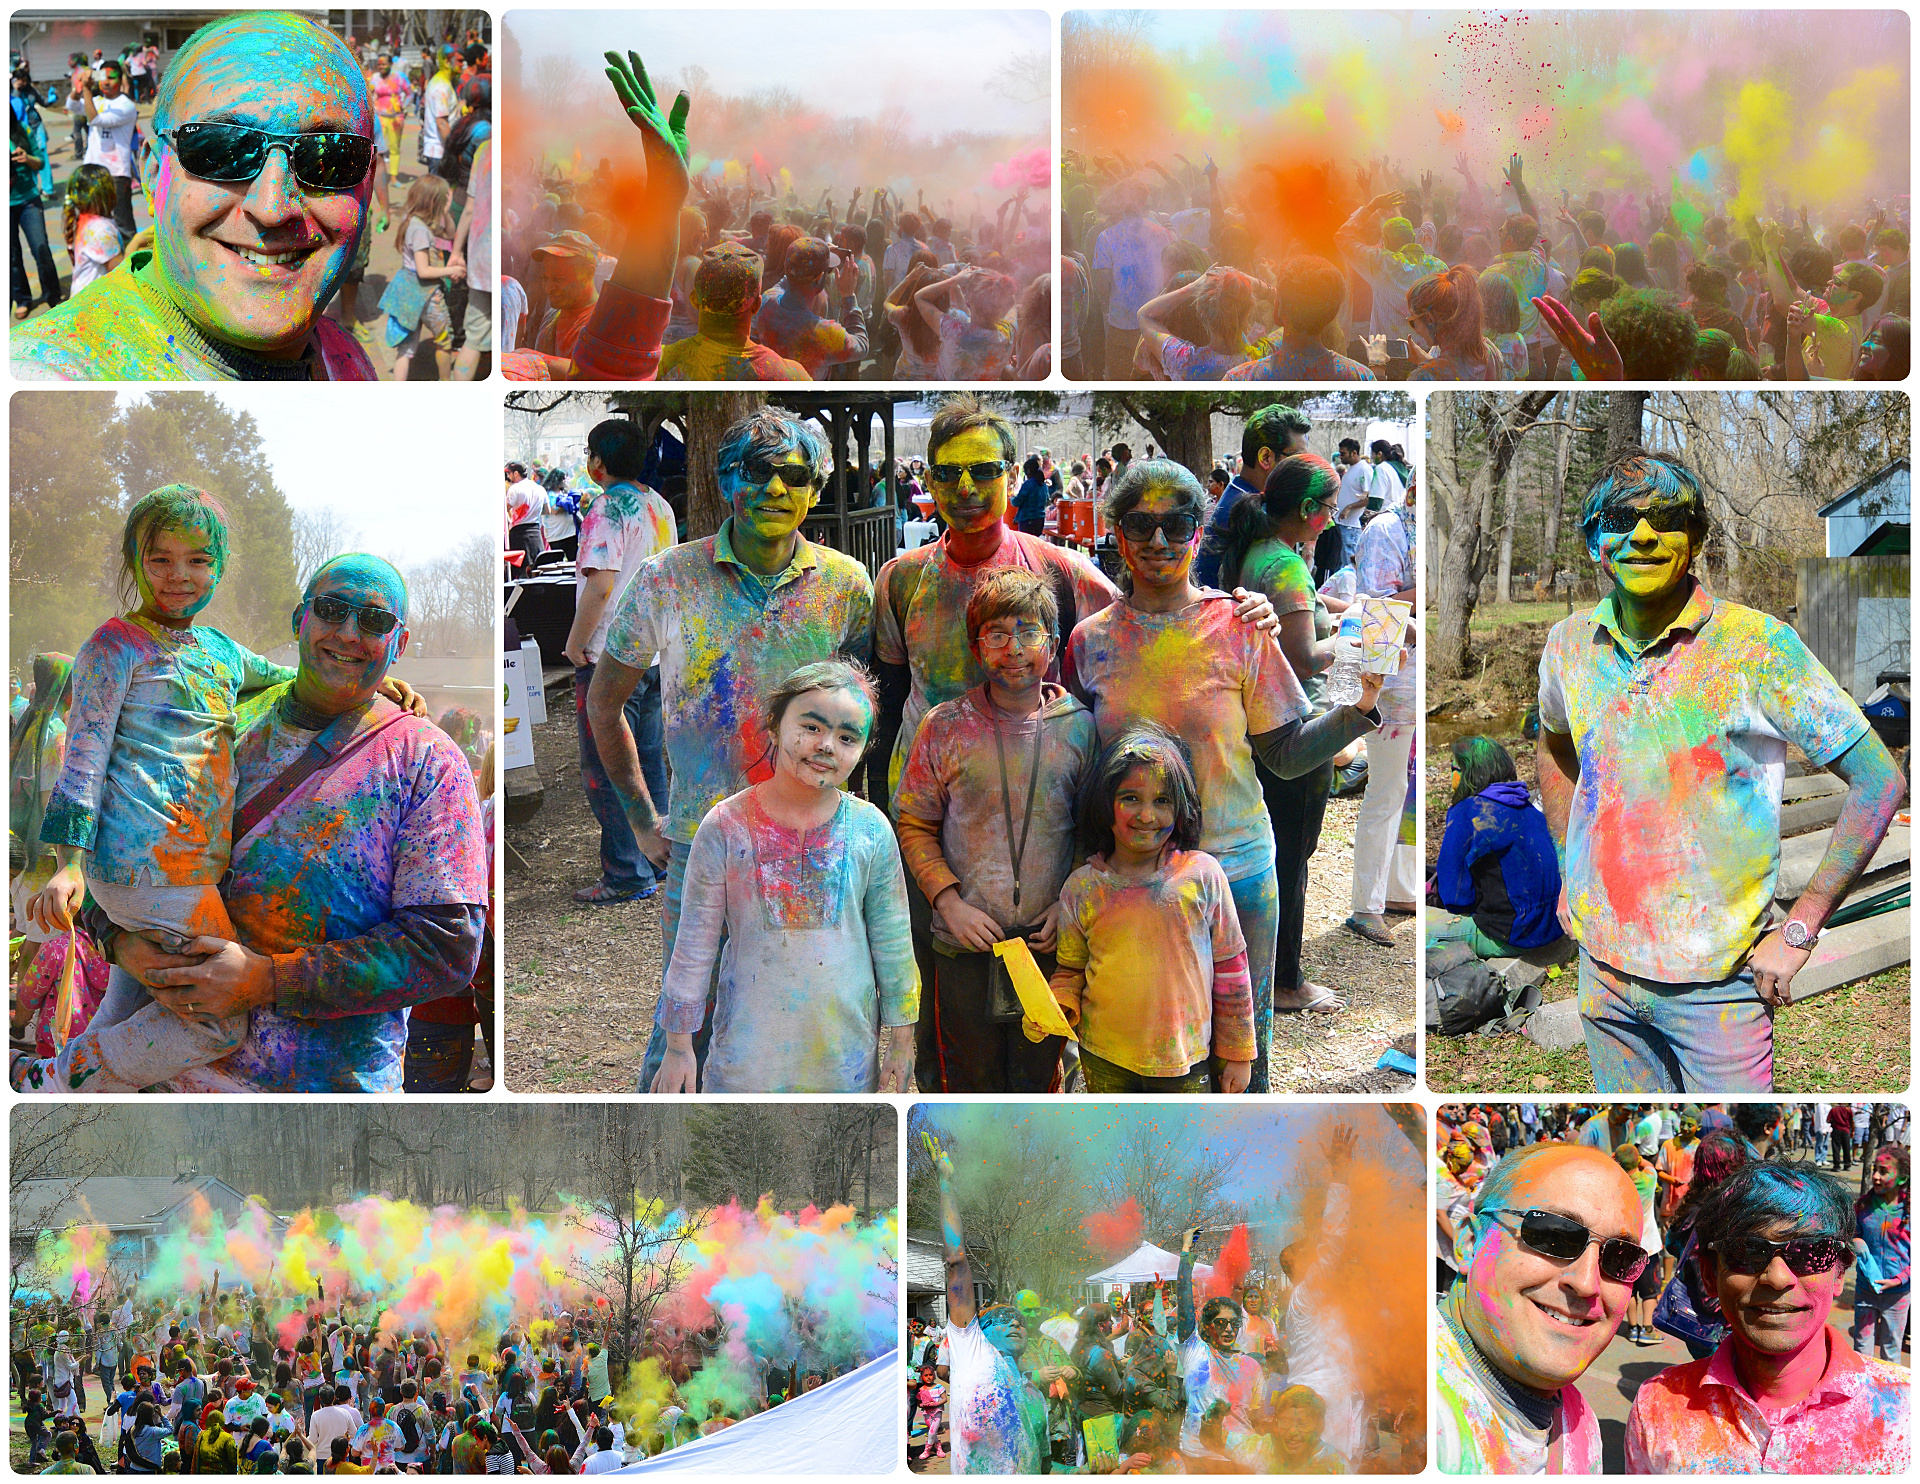 My first Holi in 2014 with my daughter, and my long time friend Amit, and my friends Raghu and Anitha and their kids, to show us how it's done.